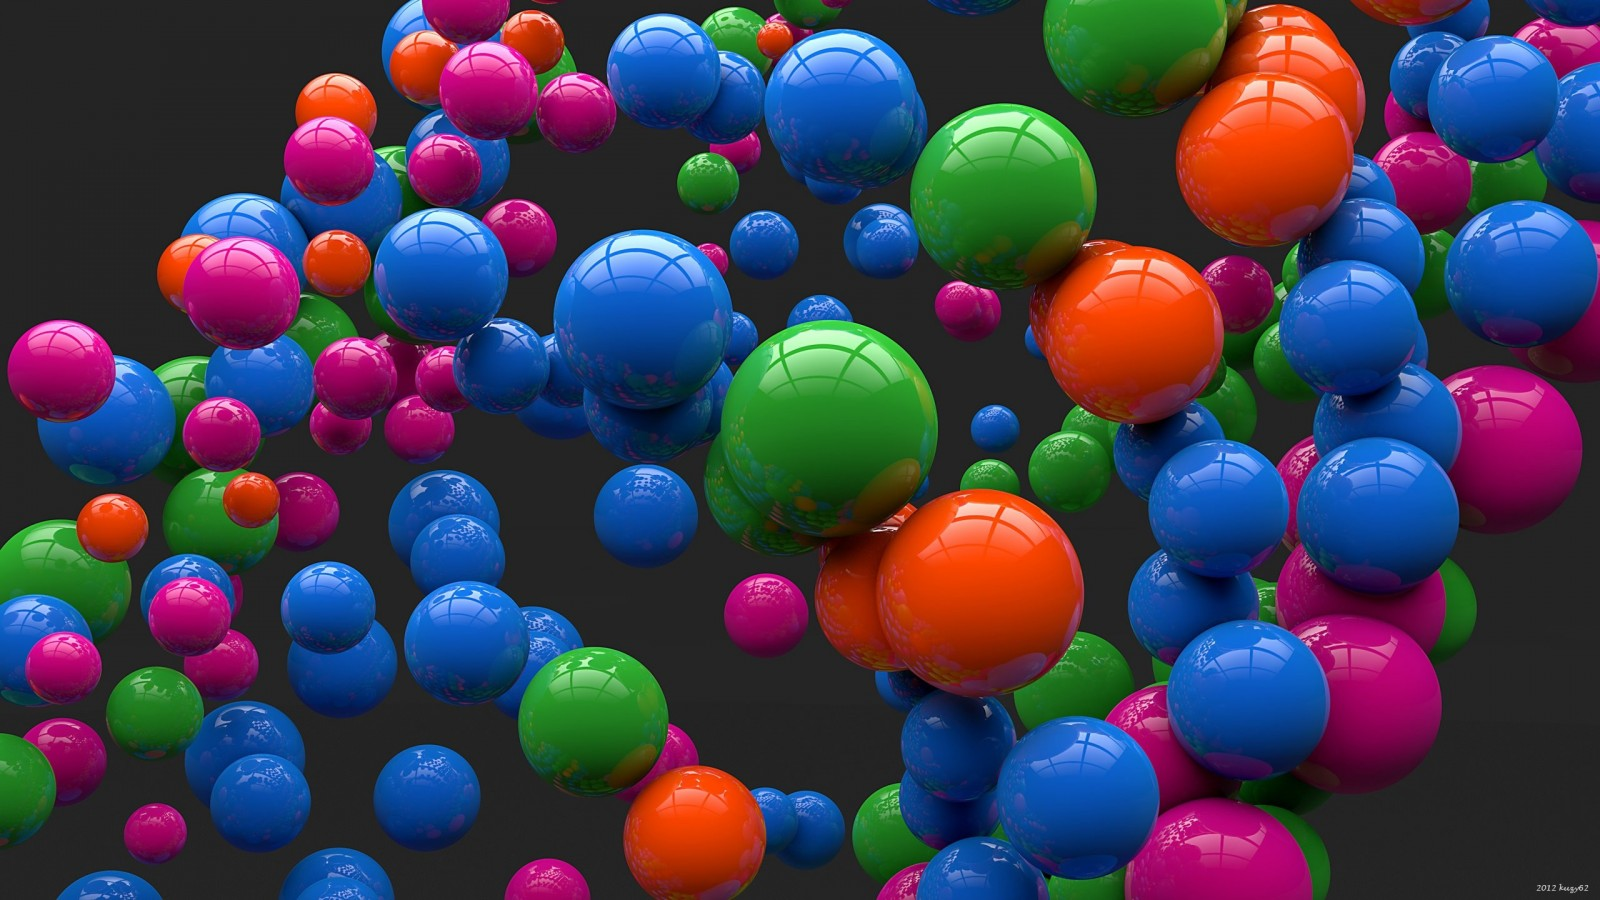 Colorful Balls Wallpaper for Desktop 1600x900